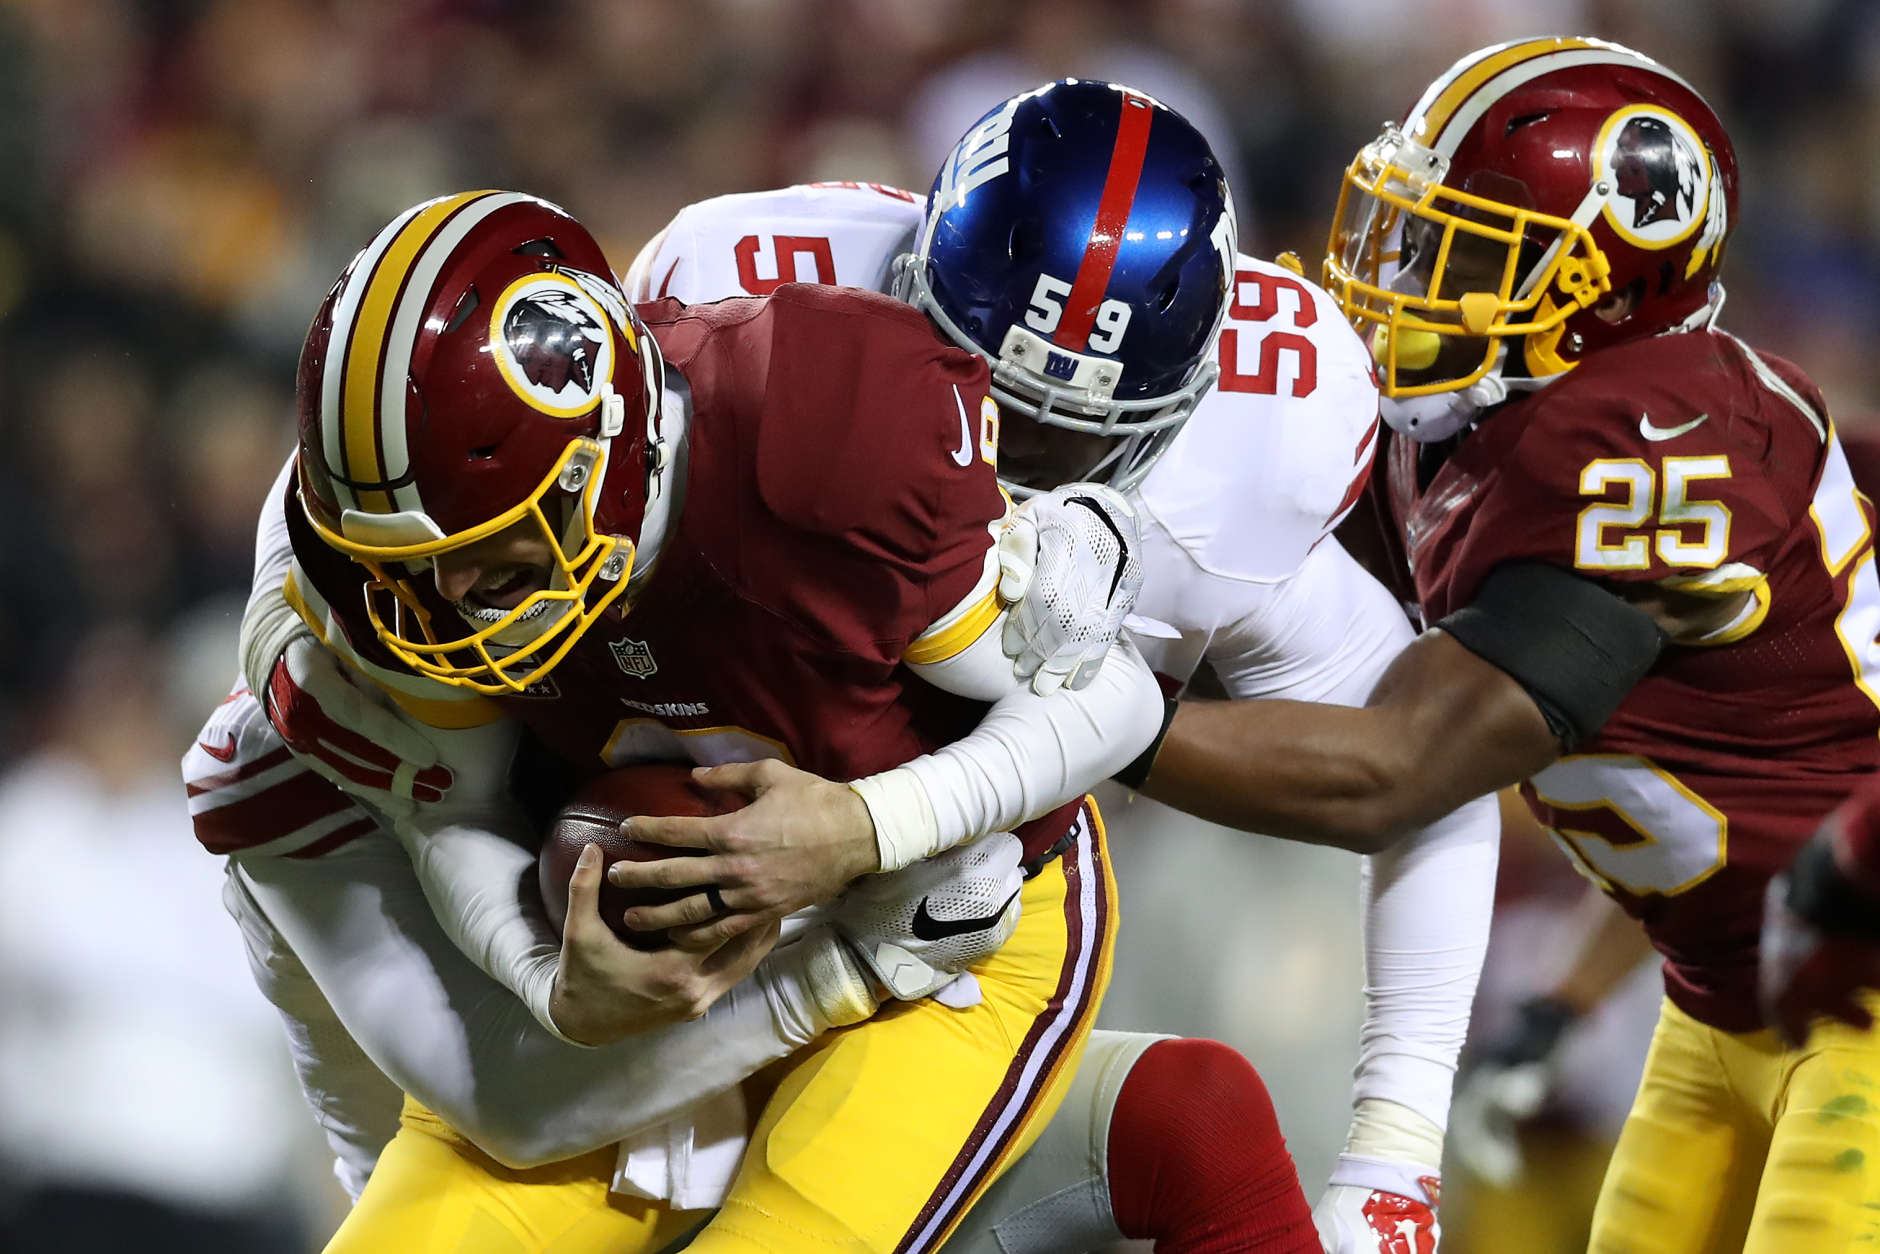 LANDOVER, MD - JANUARY 01: Quarterback Kirk Cousins #8 of the Washington Redskins is sacked by defensive back Leon Hall #25 and outside linebacker Devon Kennard #59 of the New York Giants in the third quarter at FedExField on January 1, 2017 in Landover, Maryland. (Photo by Rob Carr/Getty Images)